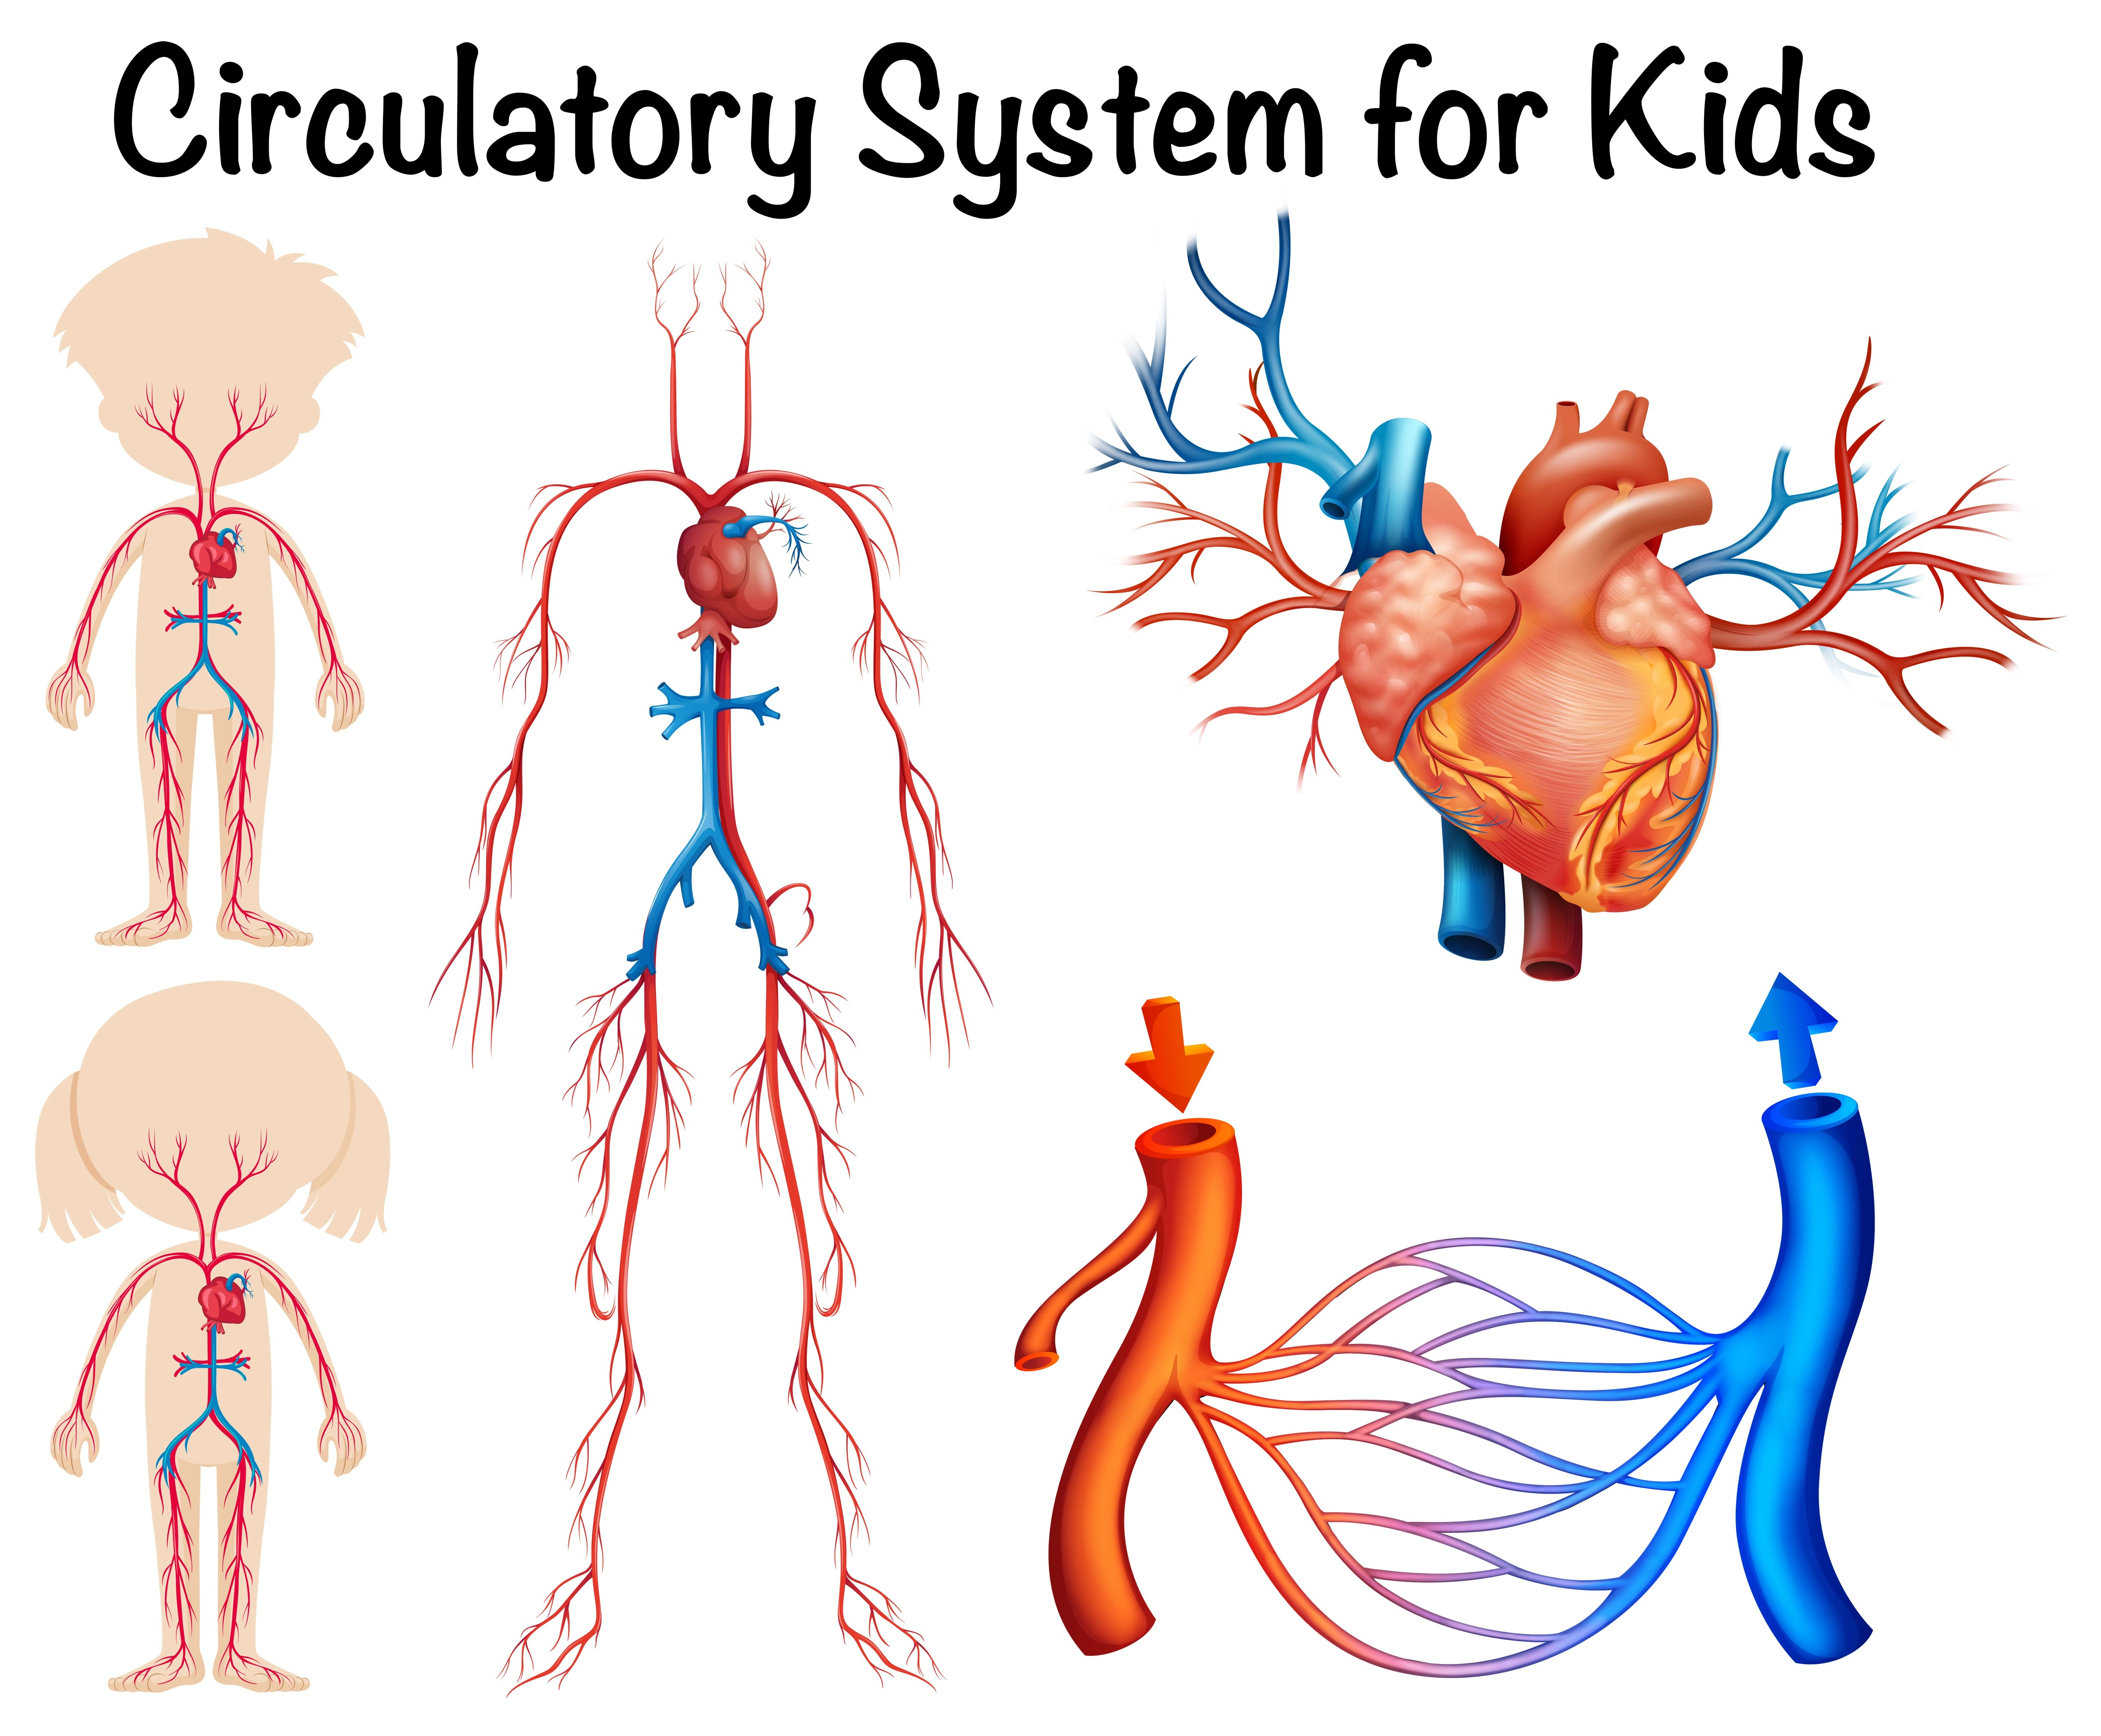 Circulatory system for kids - Download Free Vectors ...